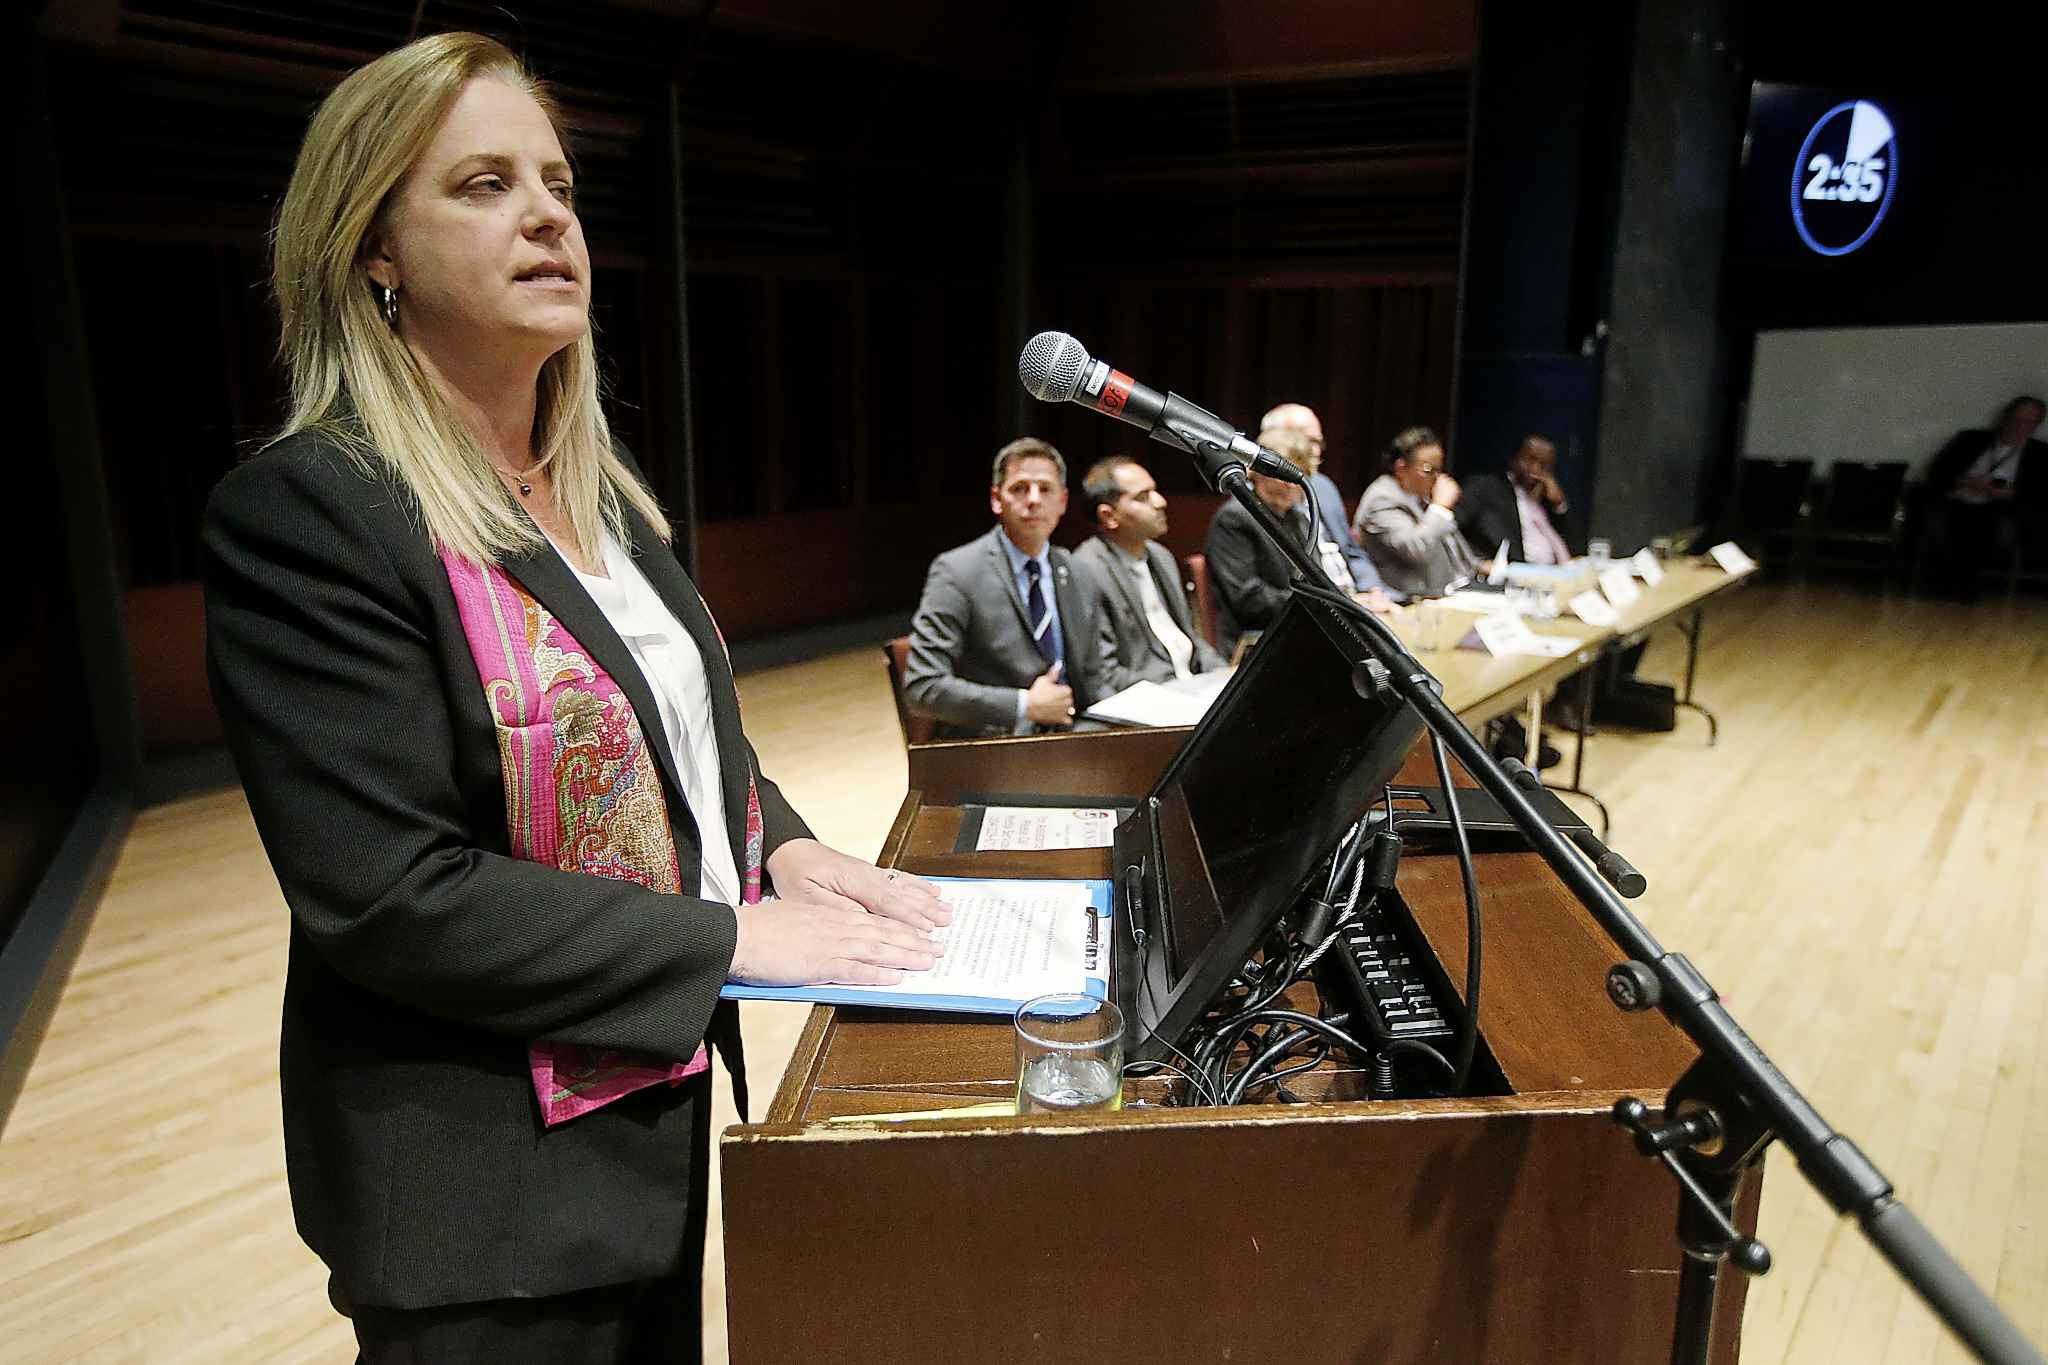 Mayoral candidate Jennifer Motkaluk speaks during the forum at the University of Winnipeg, Tuesday.